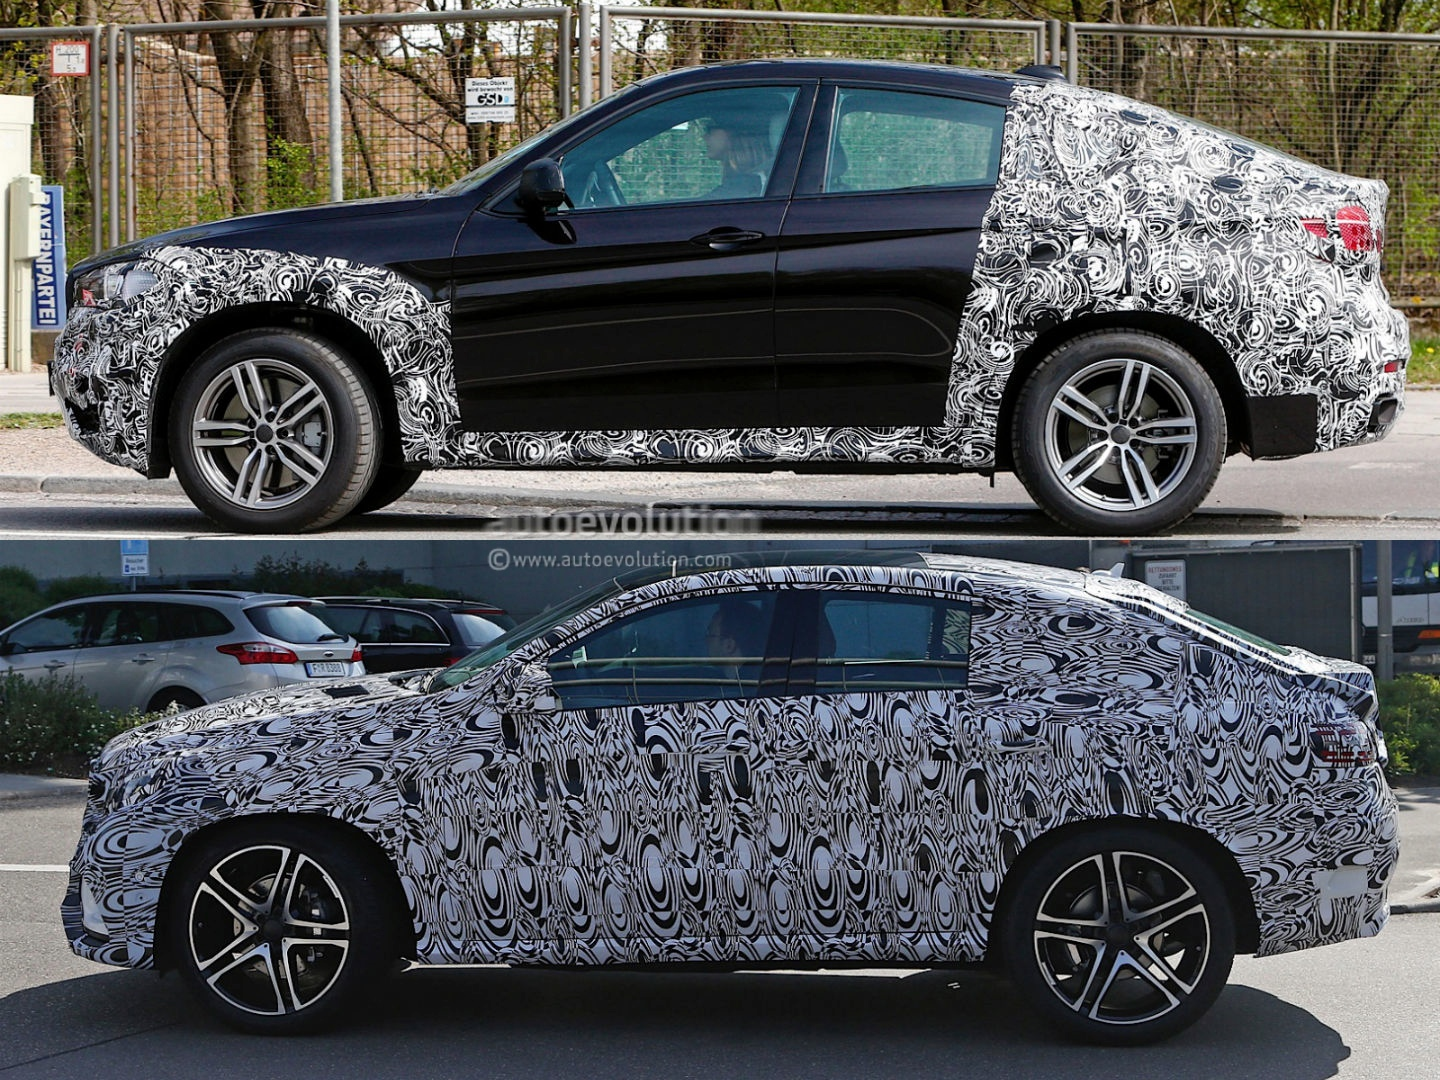 2015 Mercedes Benz Mlc Vs 2015 Bmw X6 Spyshots Autoevolution